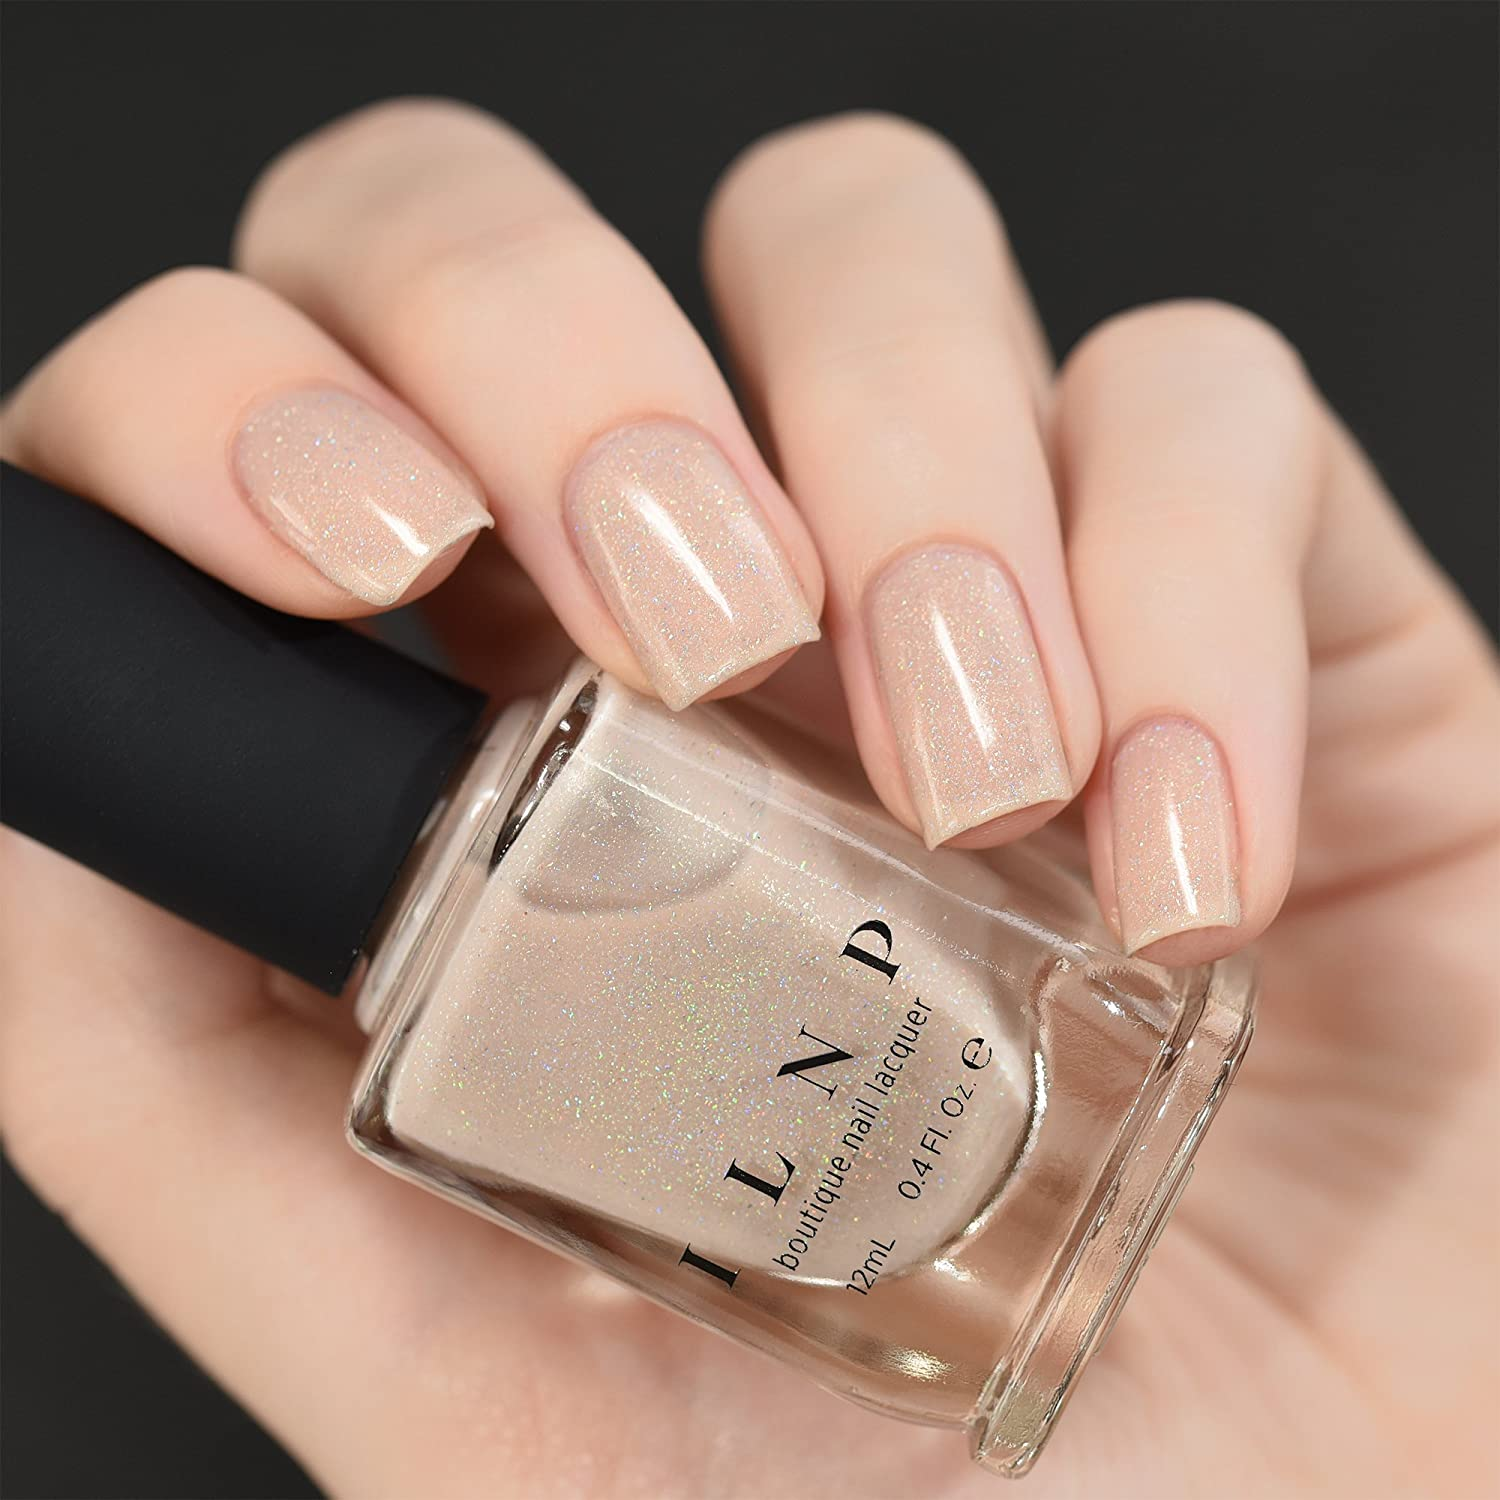 Amazon.com : ILNP Elle - Almond Nude Holographic Sheer Jelly Nail ...